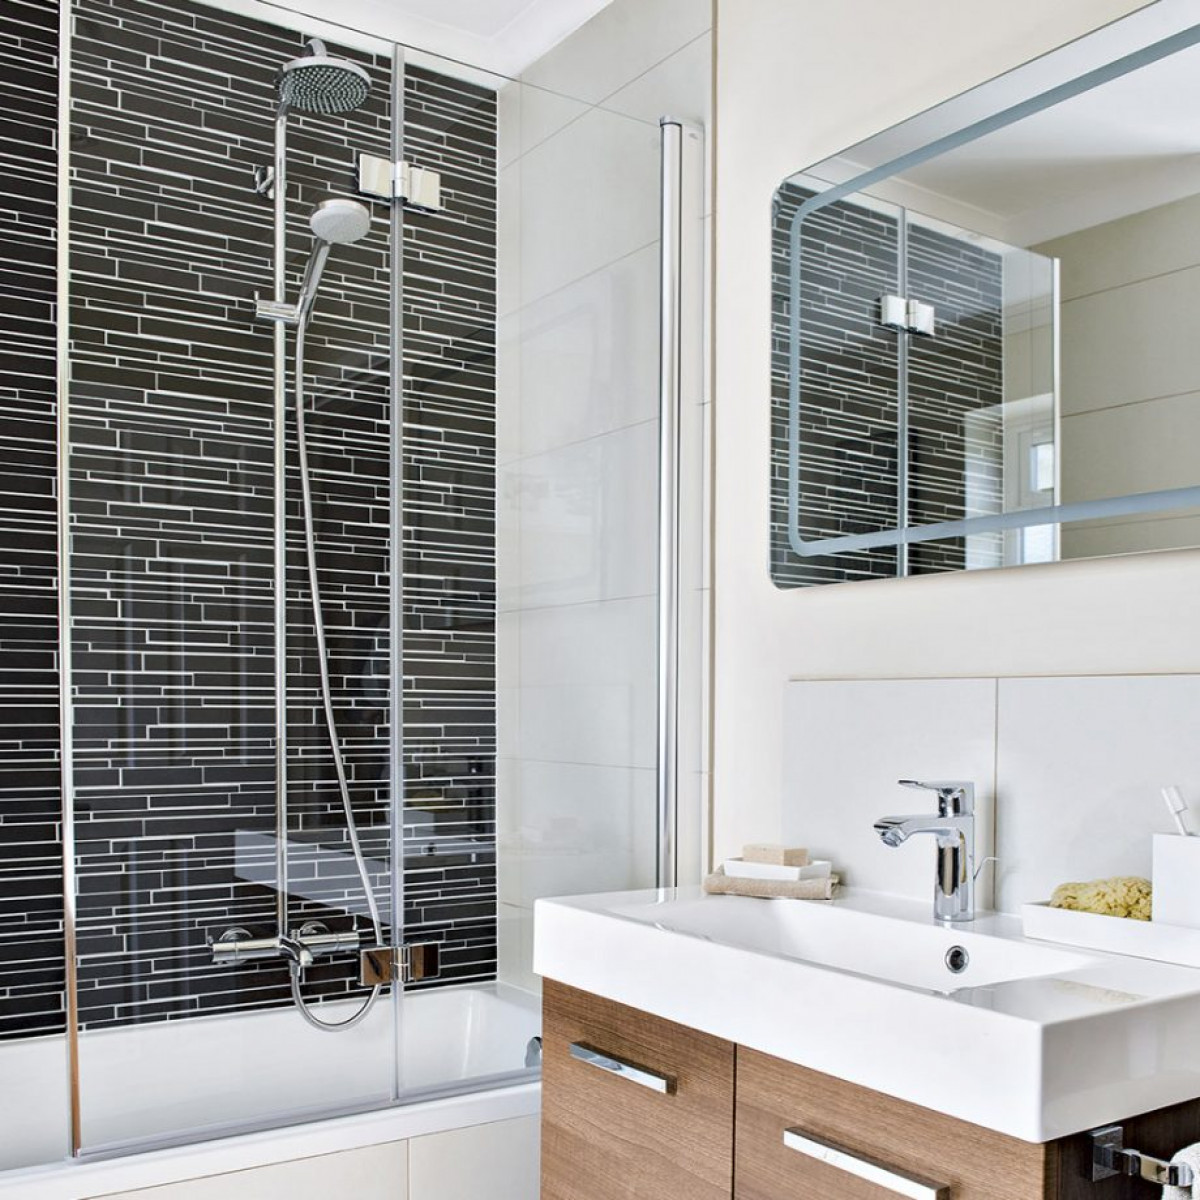 26 Small Bathroom Ideas & Images to Inspire You   British Ceramic Tile